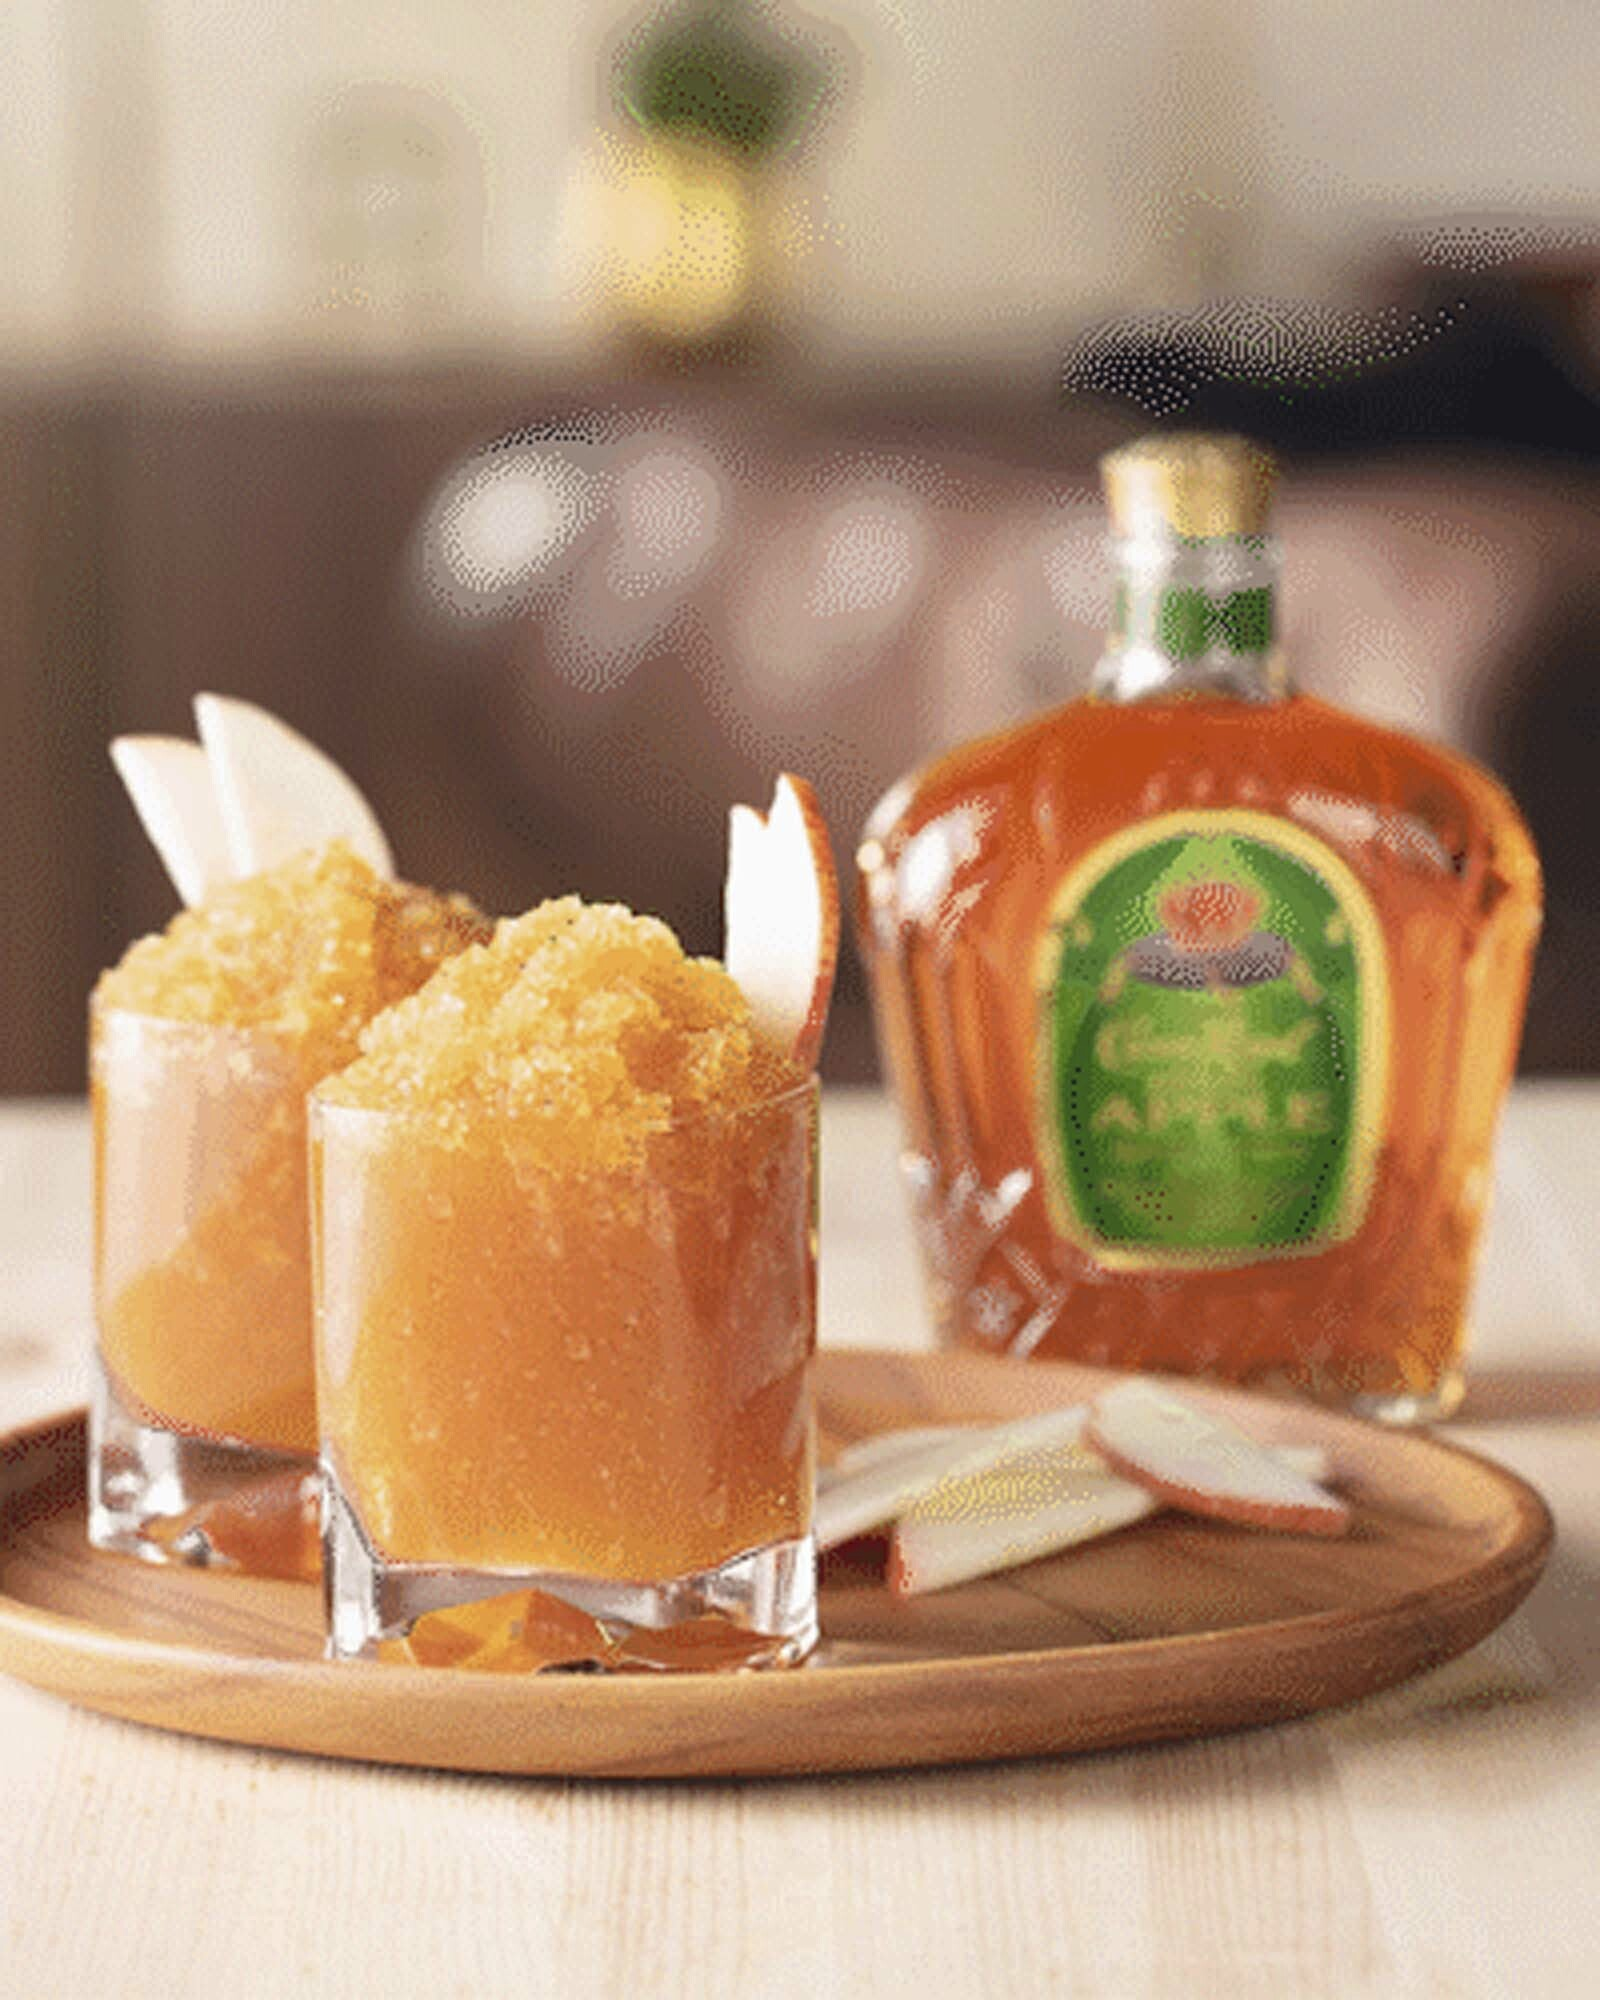 Crown Royal Apple Whisky Slush Whisky Cocktail